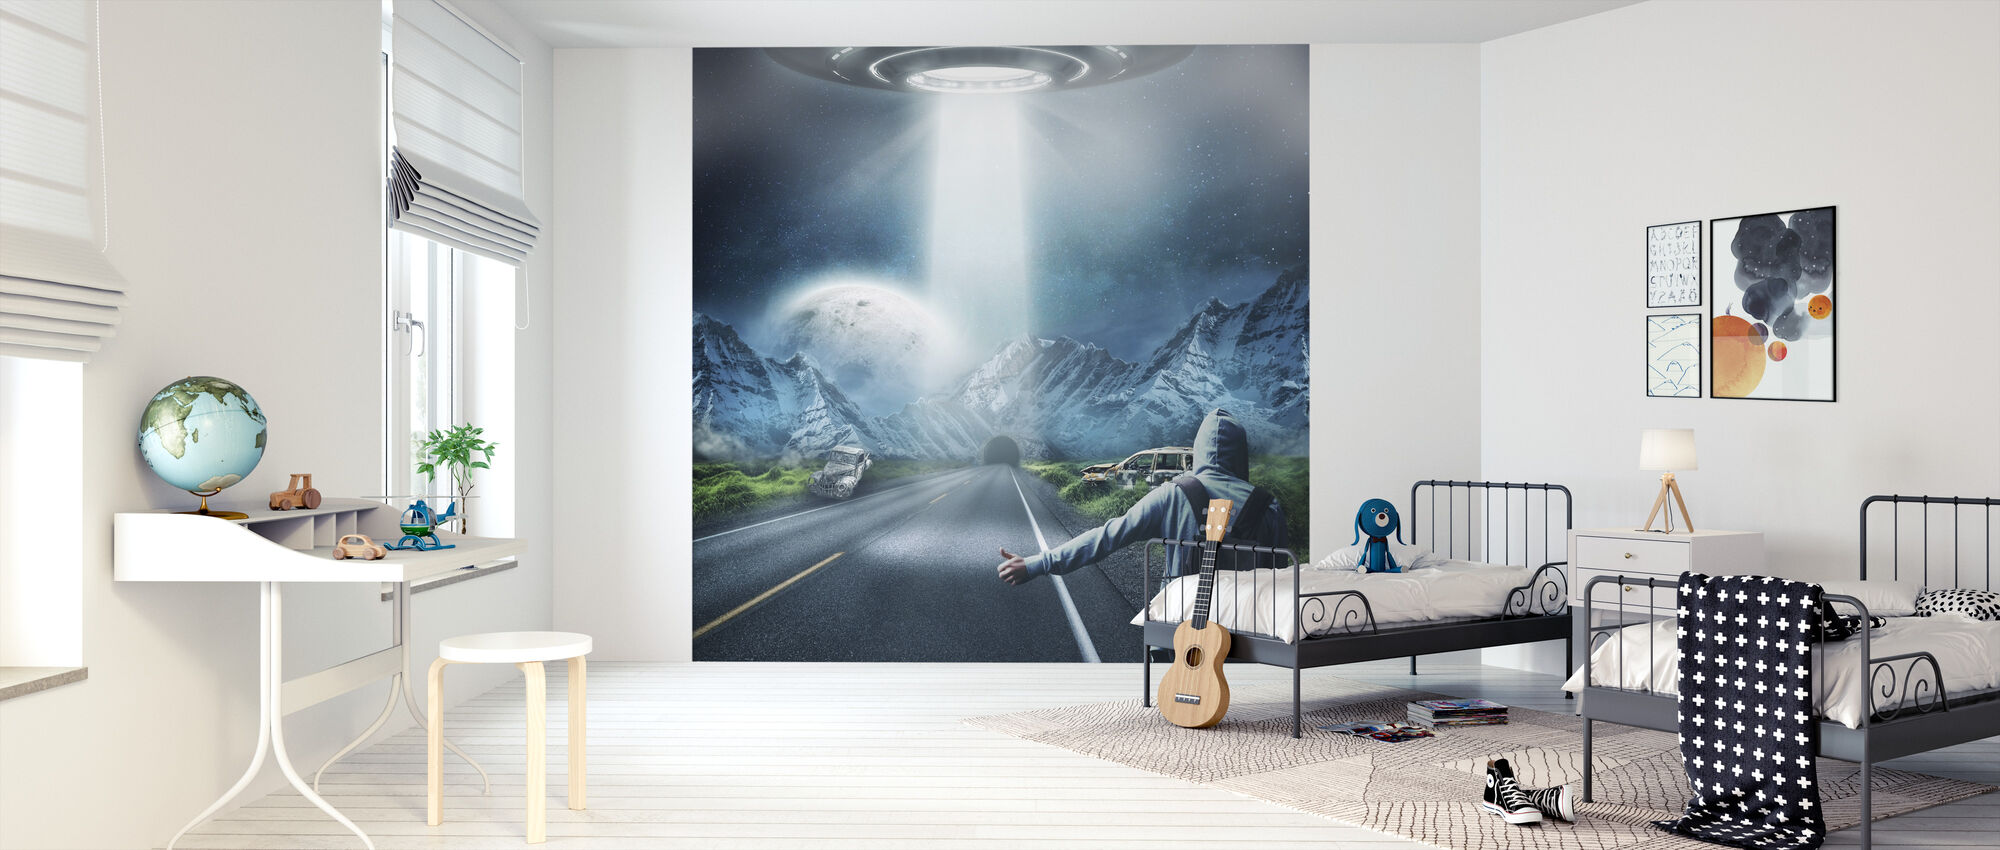 UFO Fantasy - Wallpaper - Kids Room